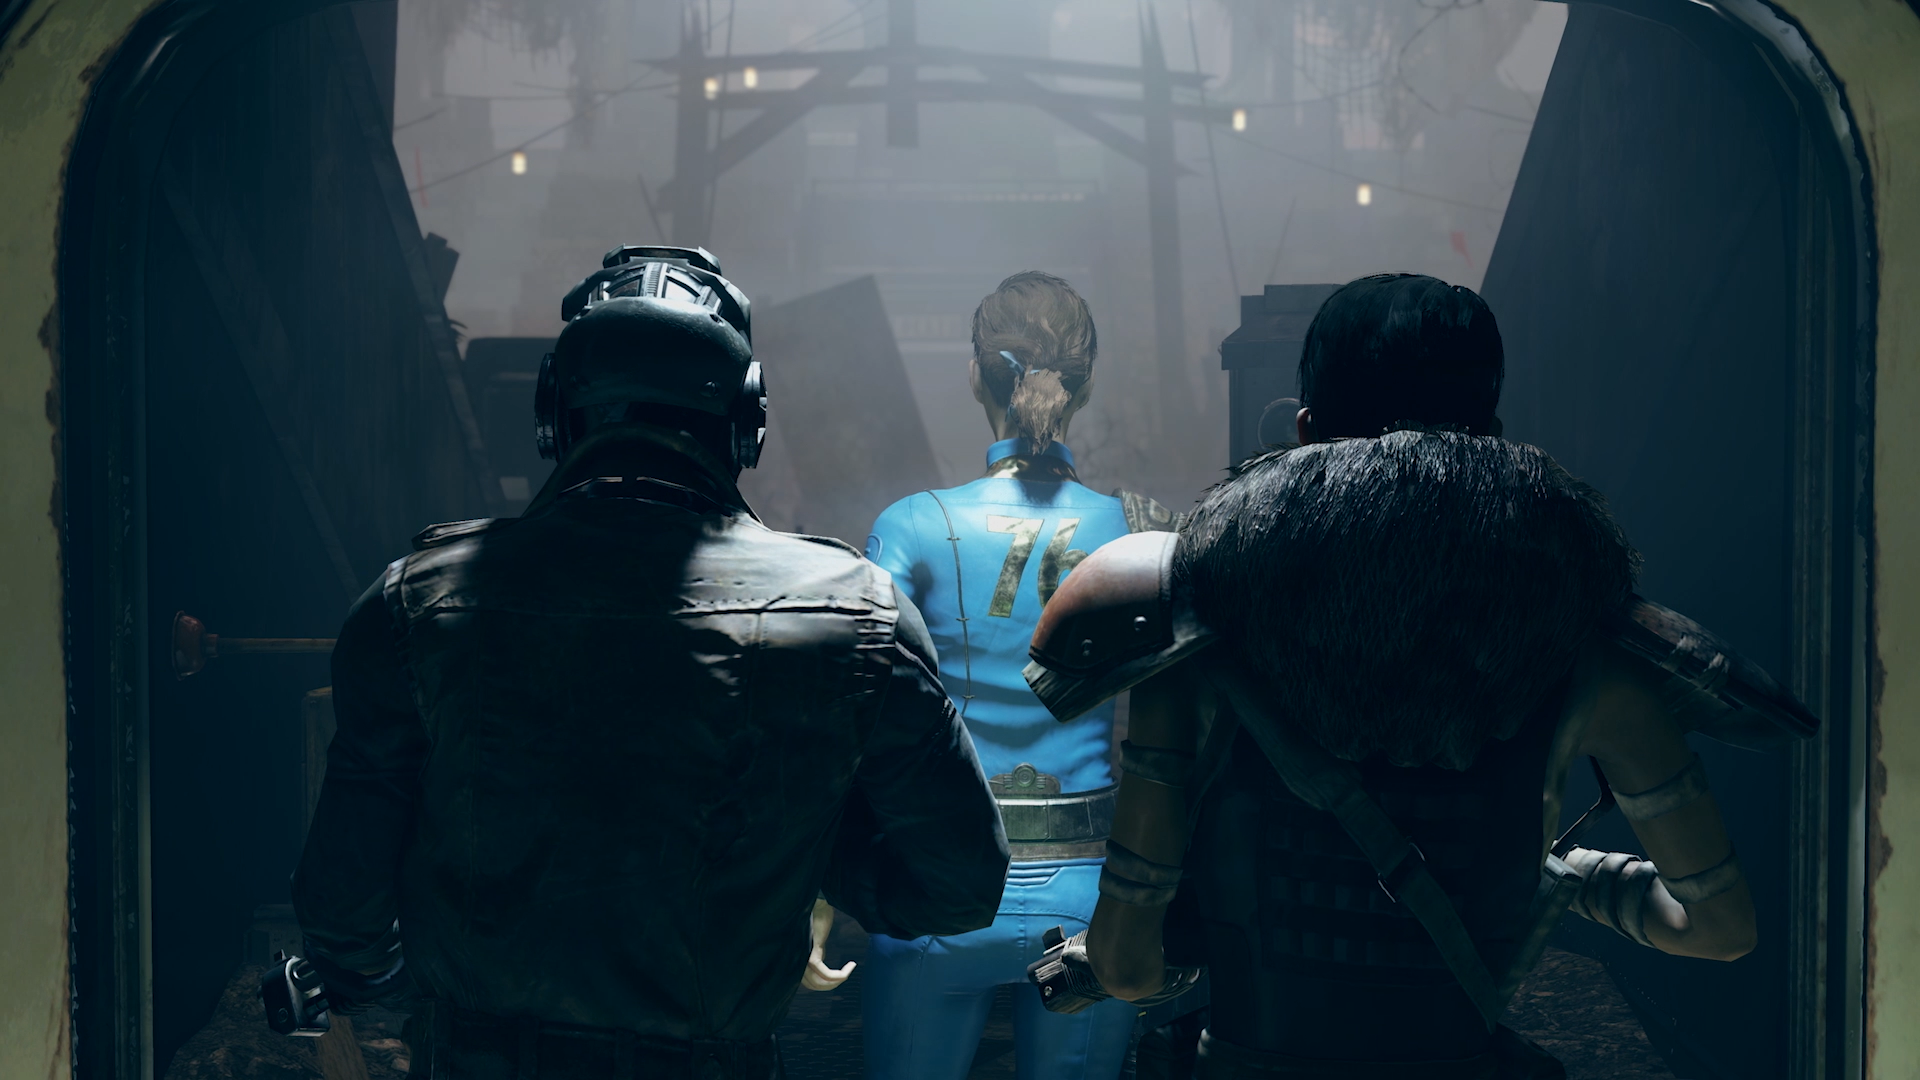 Seen from behind, two roughly costumed figures escort a woman wearing a Vault 76 jumpsuit